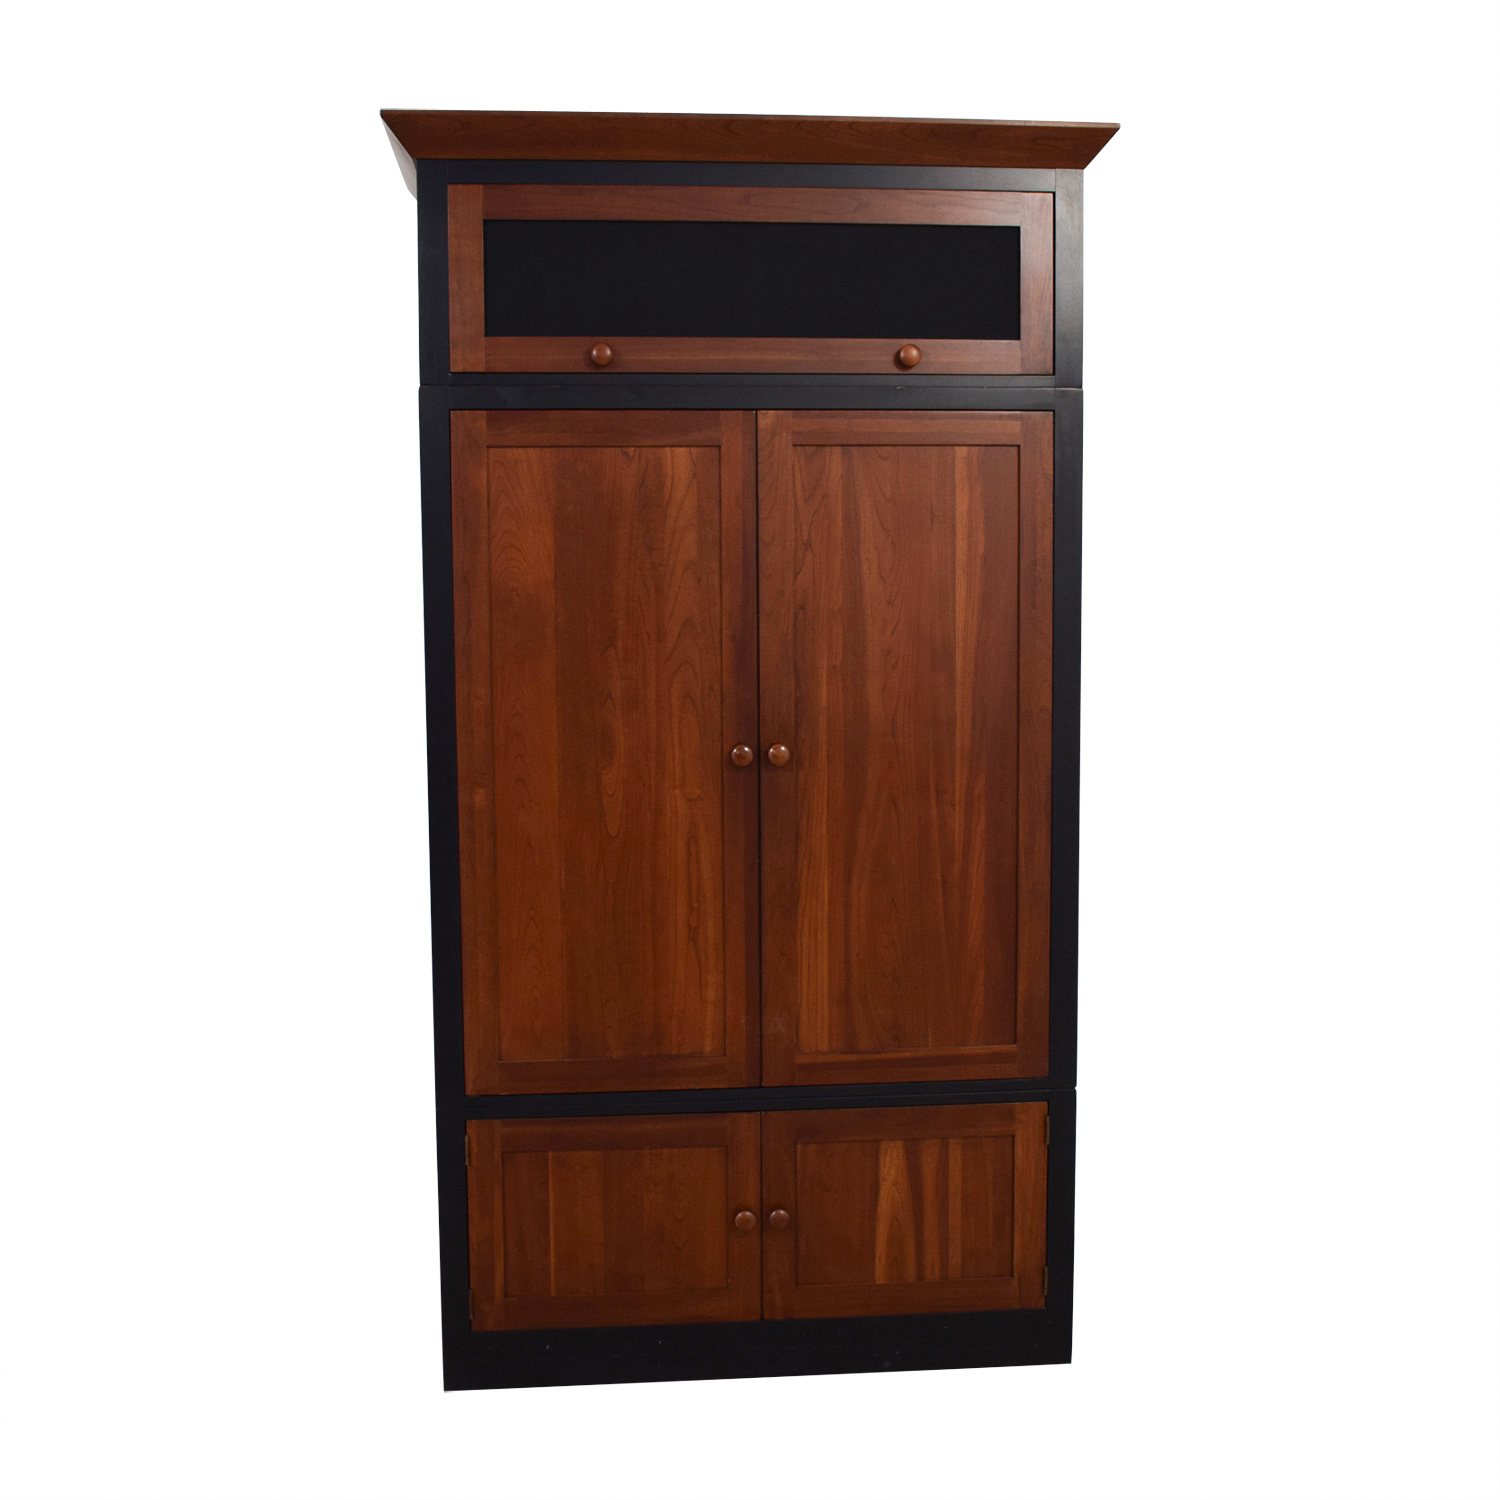 Charmant Ethan Allen Ethan Allen Wood Media Cabinet For Sale